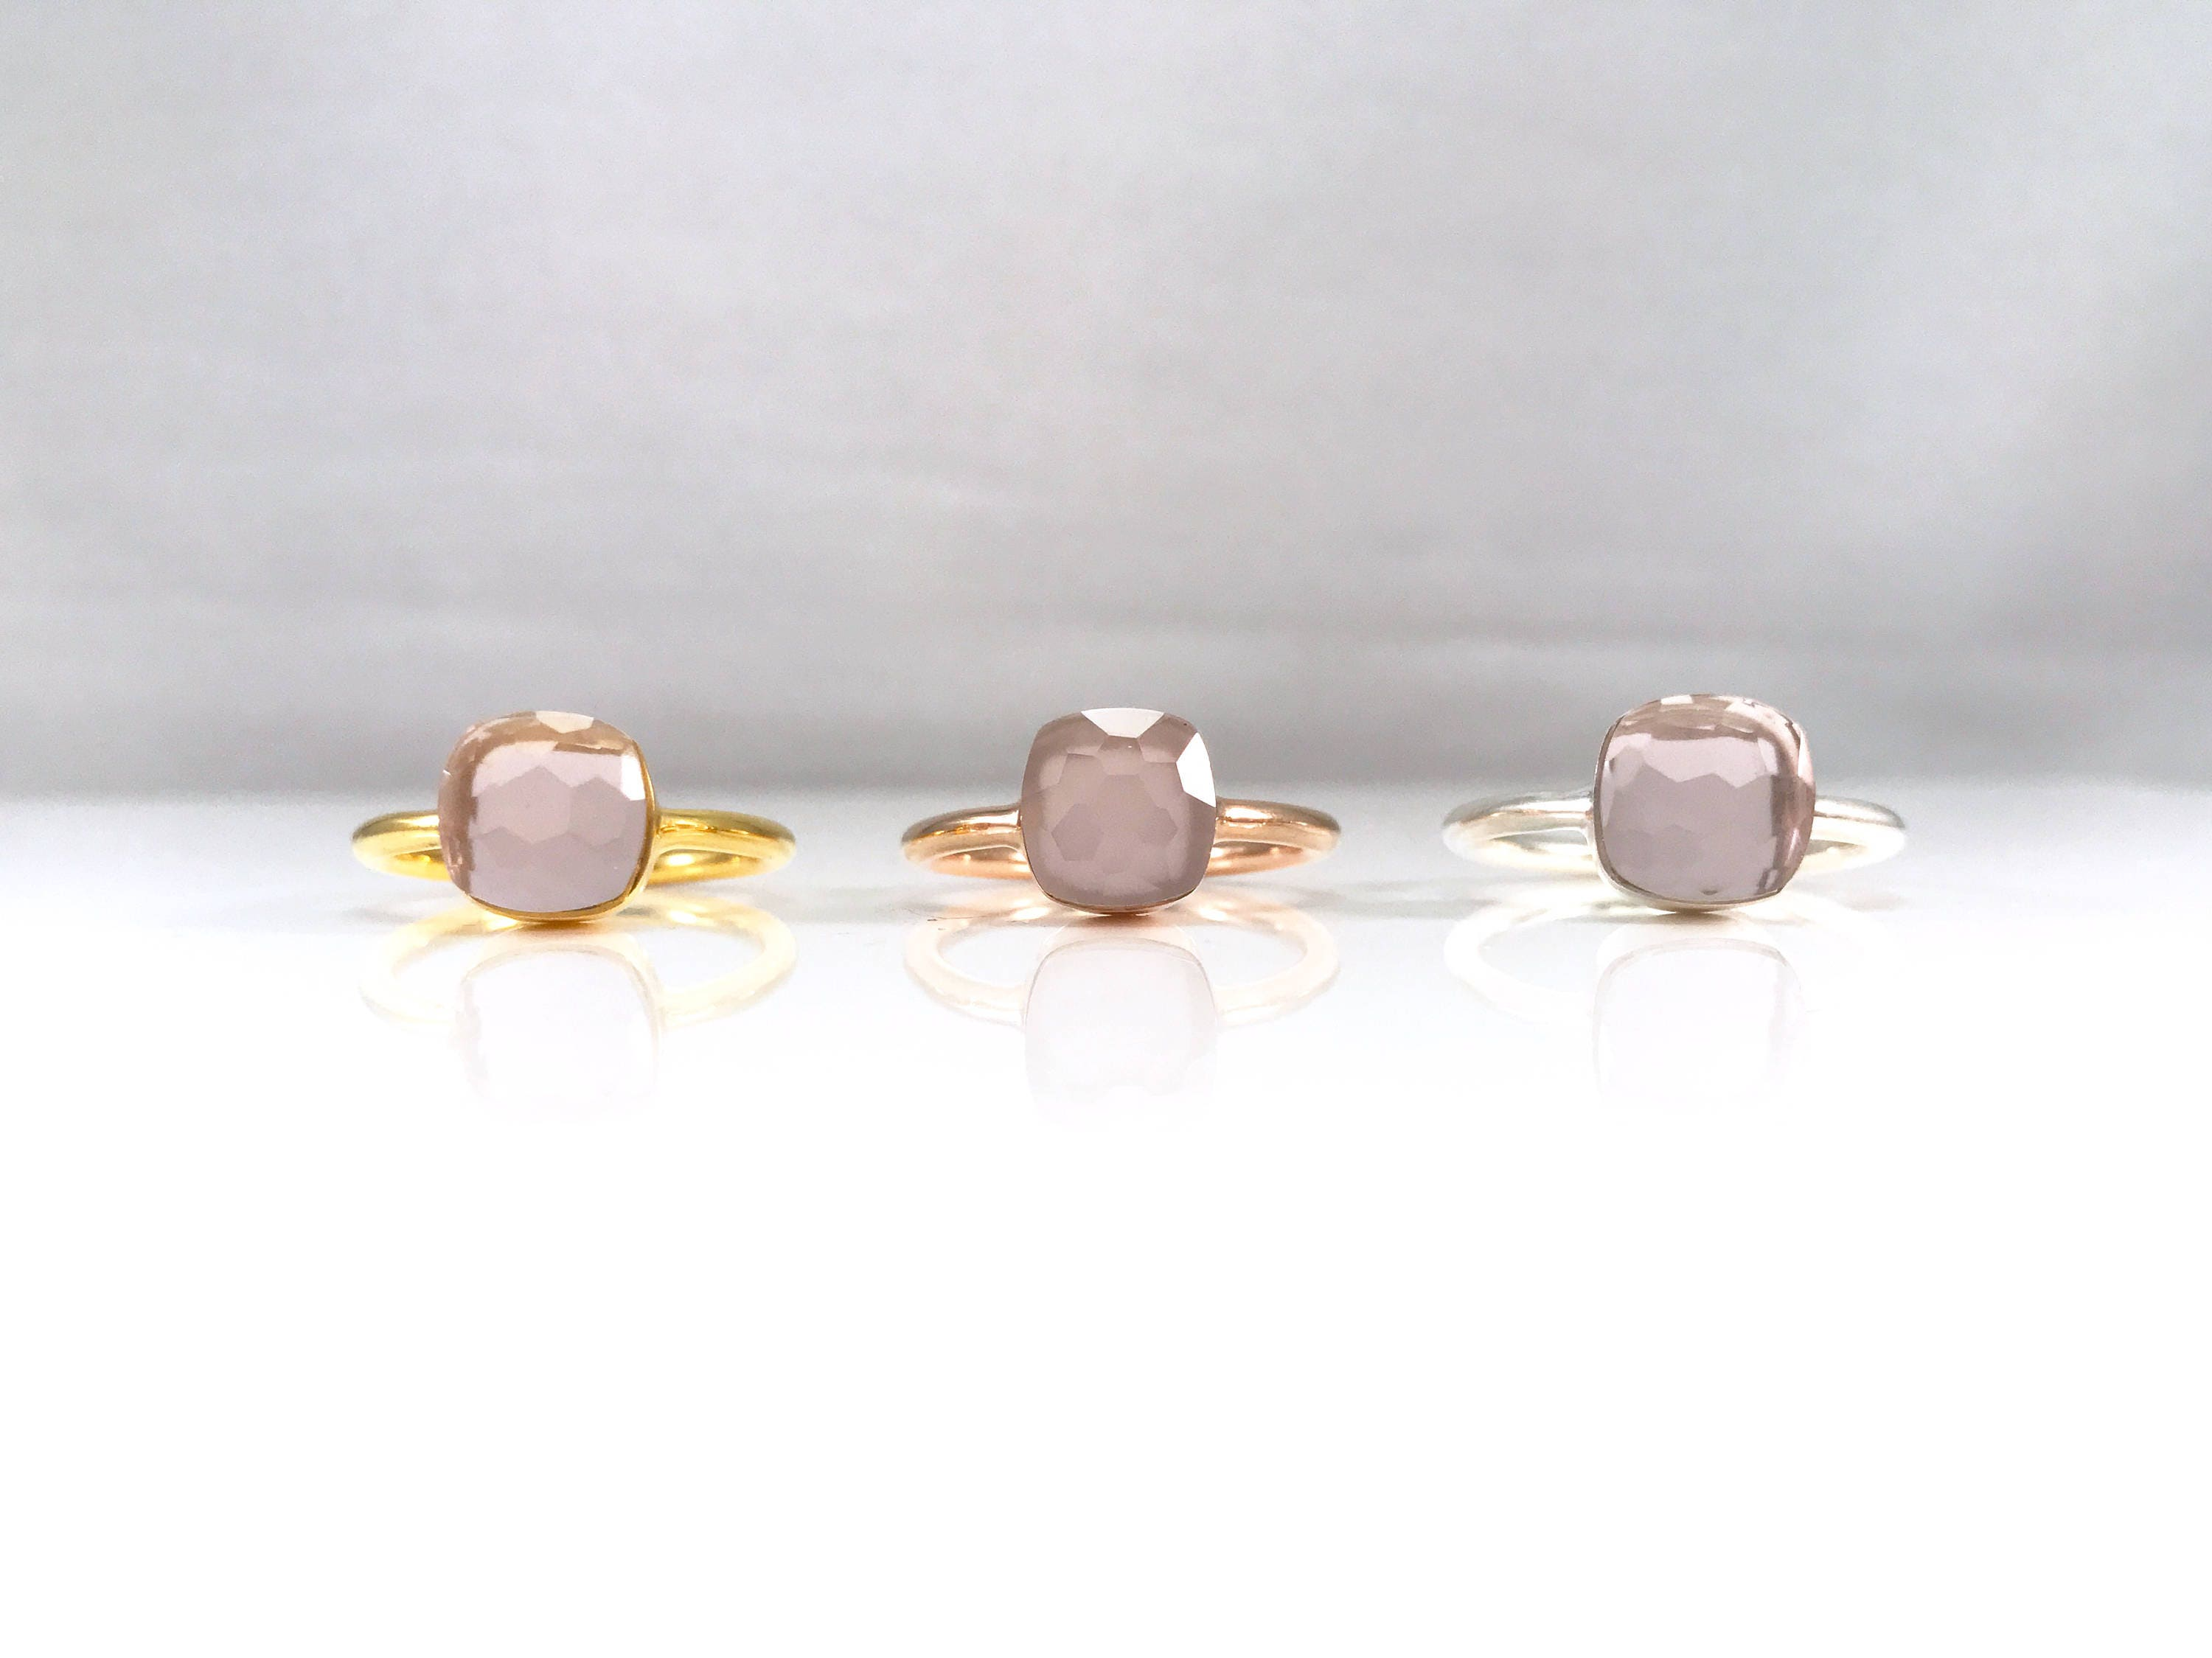 stone crystal ring fullsizerender rings quartz kind single of rose a silver in sterling products raw solitaire